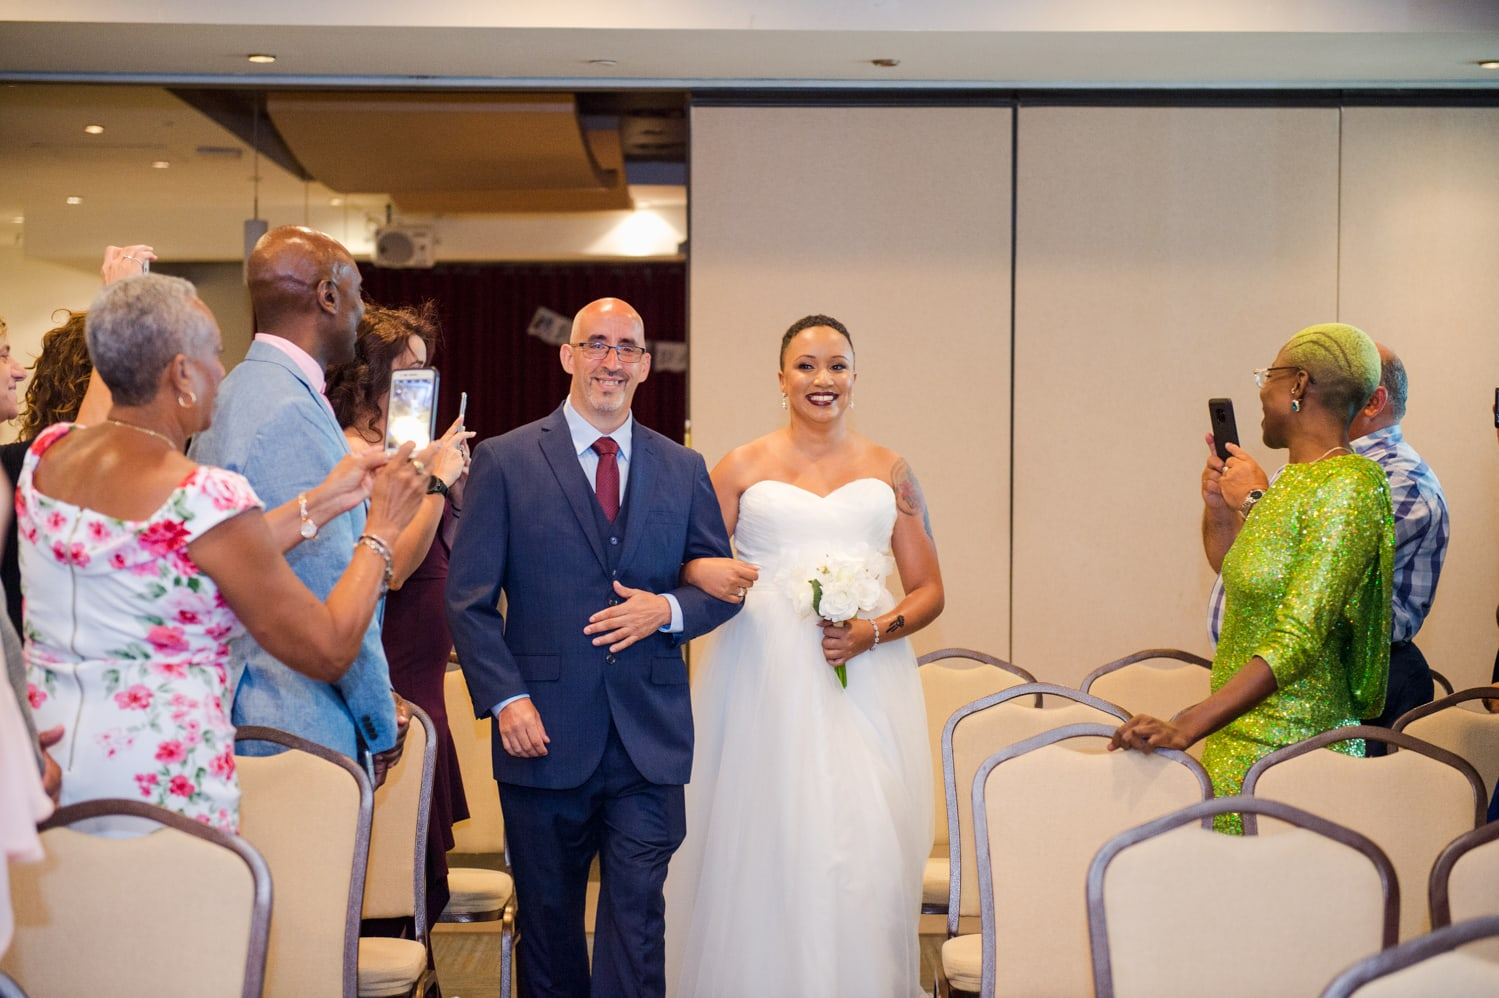 destination wedding at the Doubletree by Hilton San Juan by Puerto Rico wedding photographer